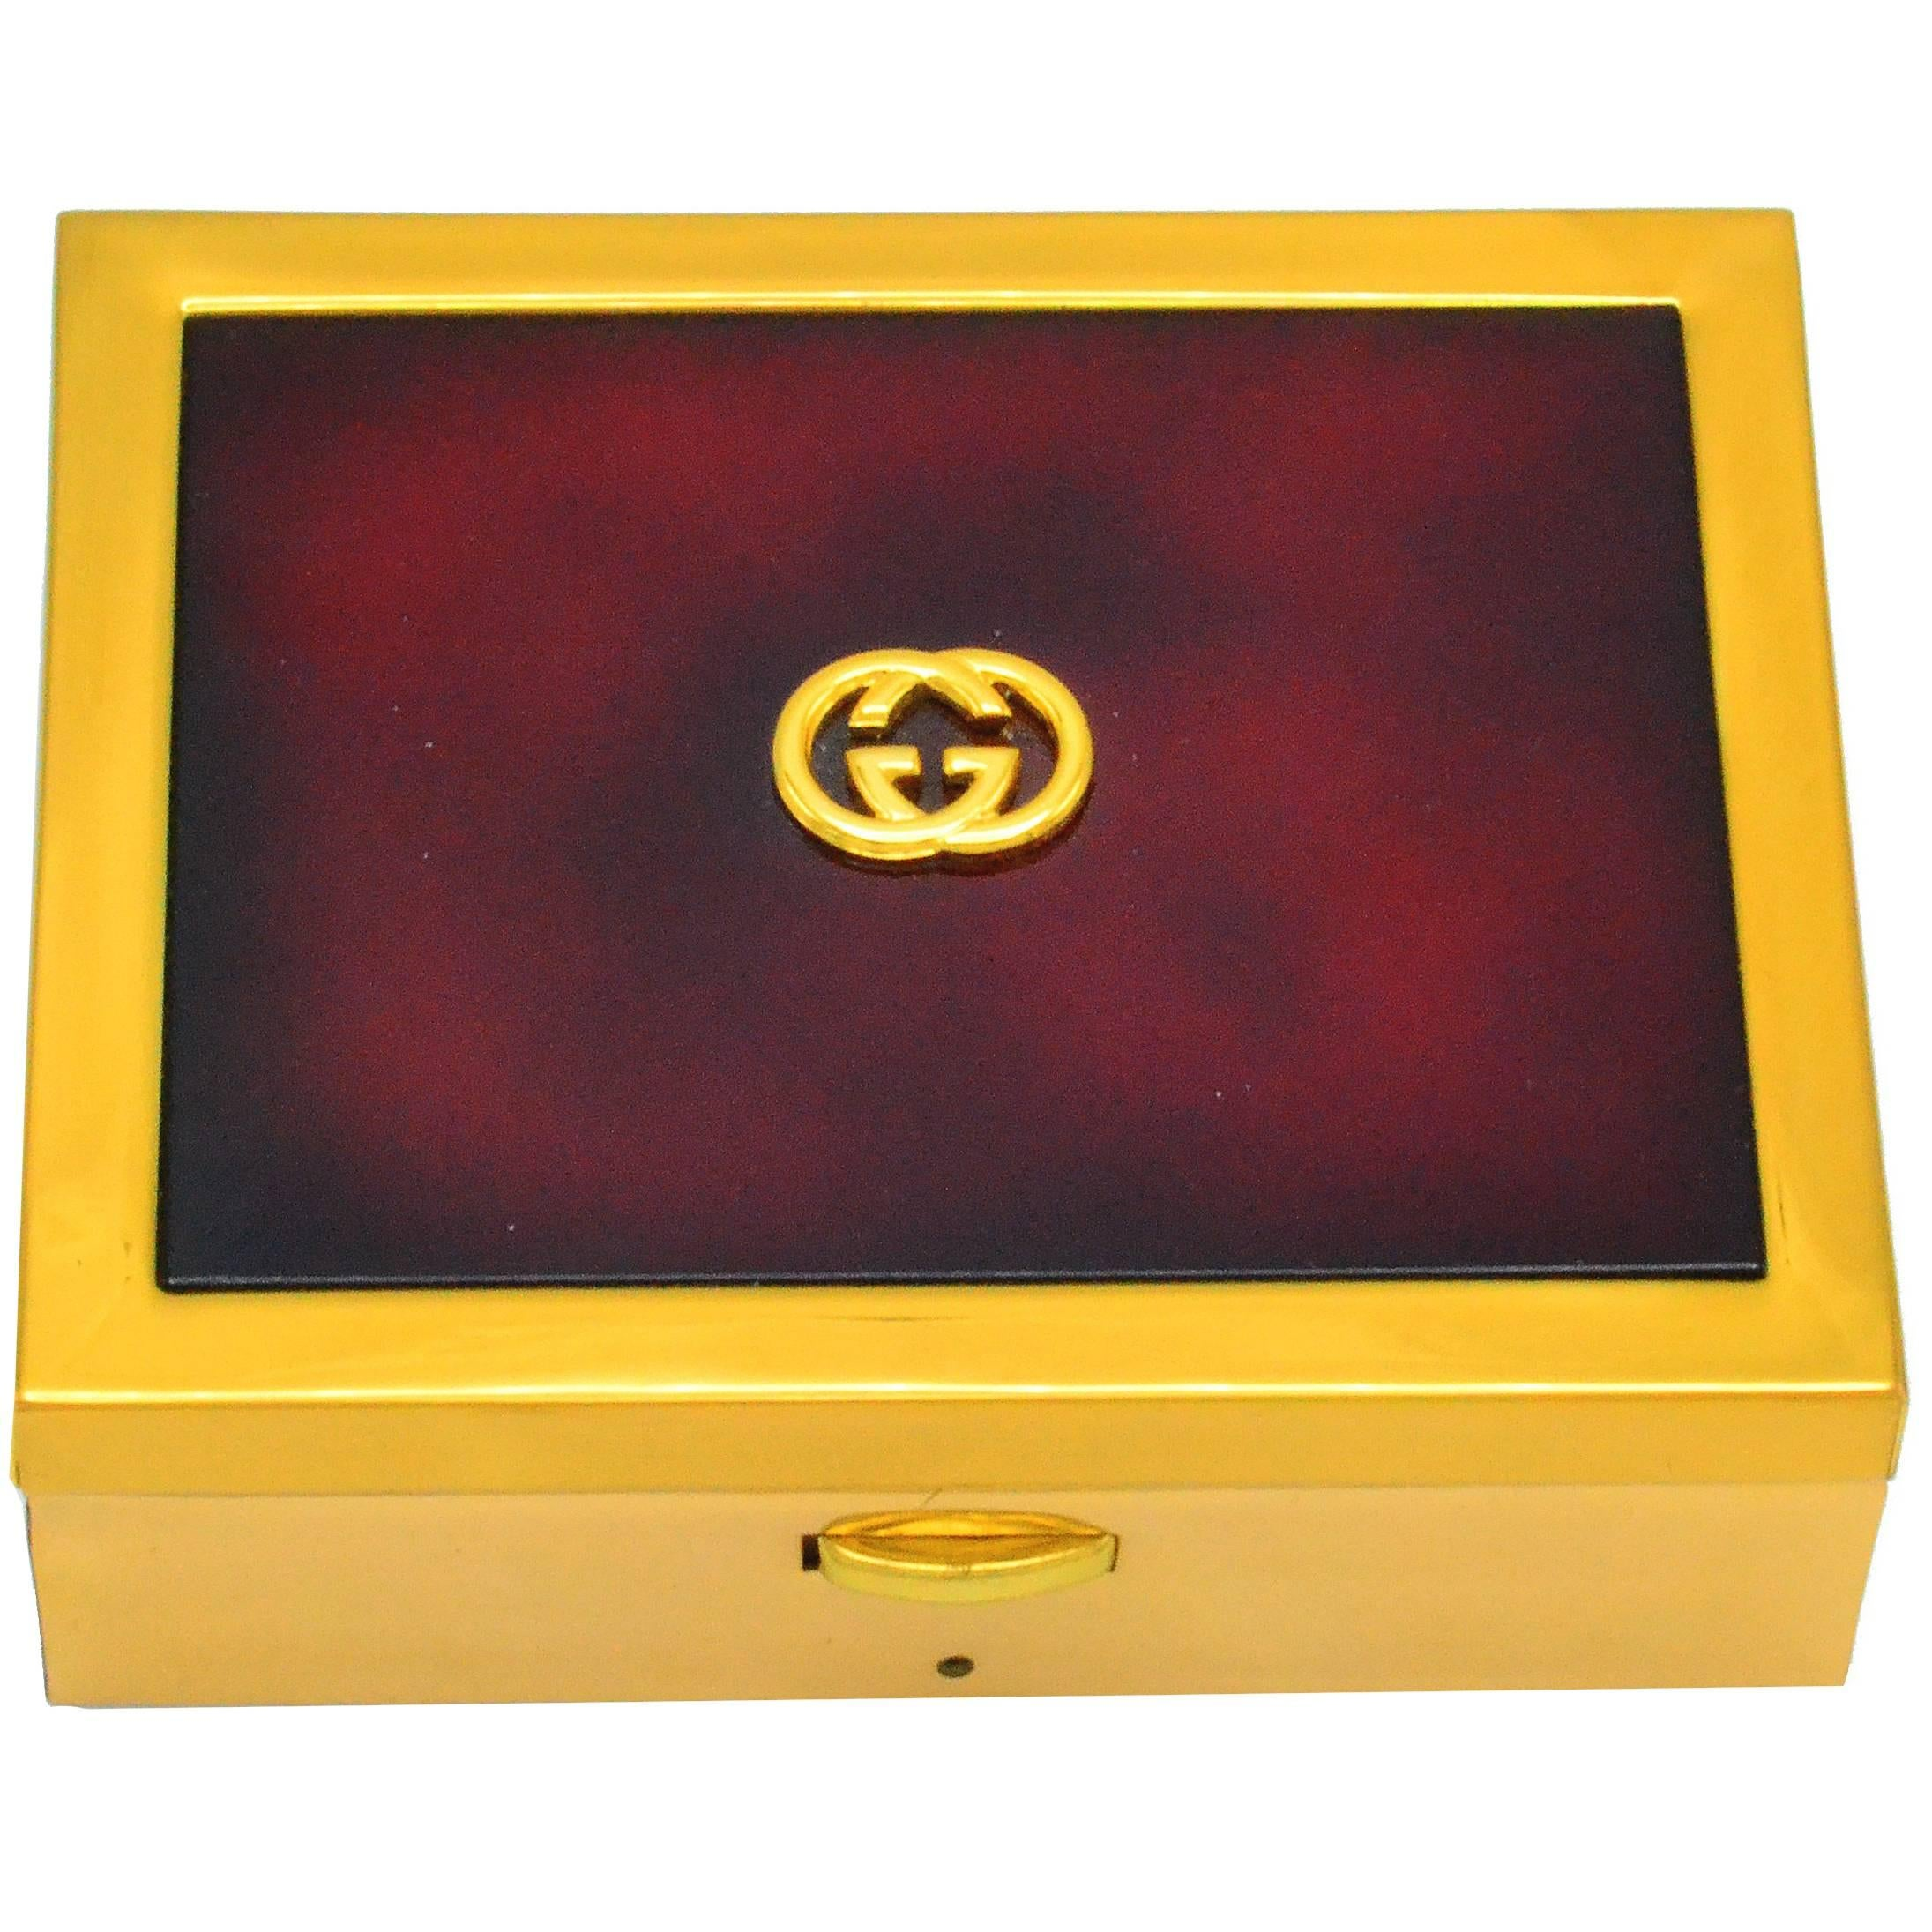 3ad321c7afca Gucci Box For Sale at 1stdibs